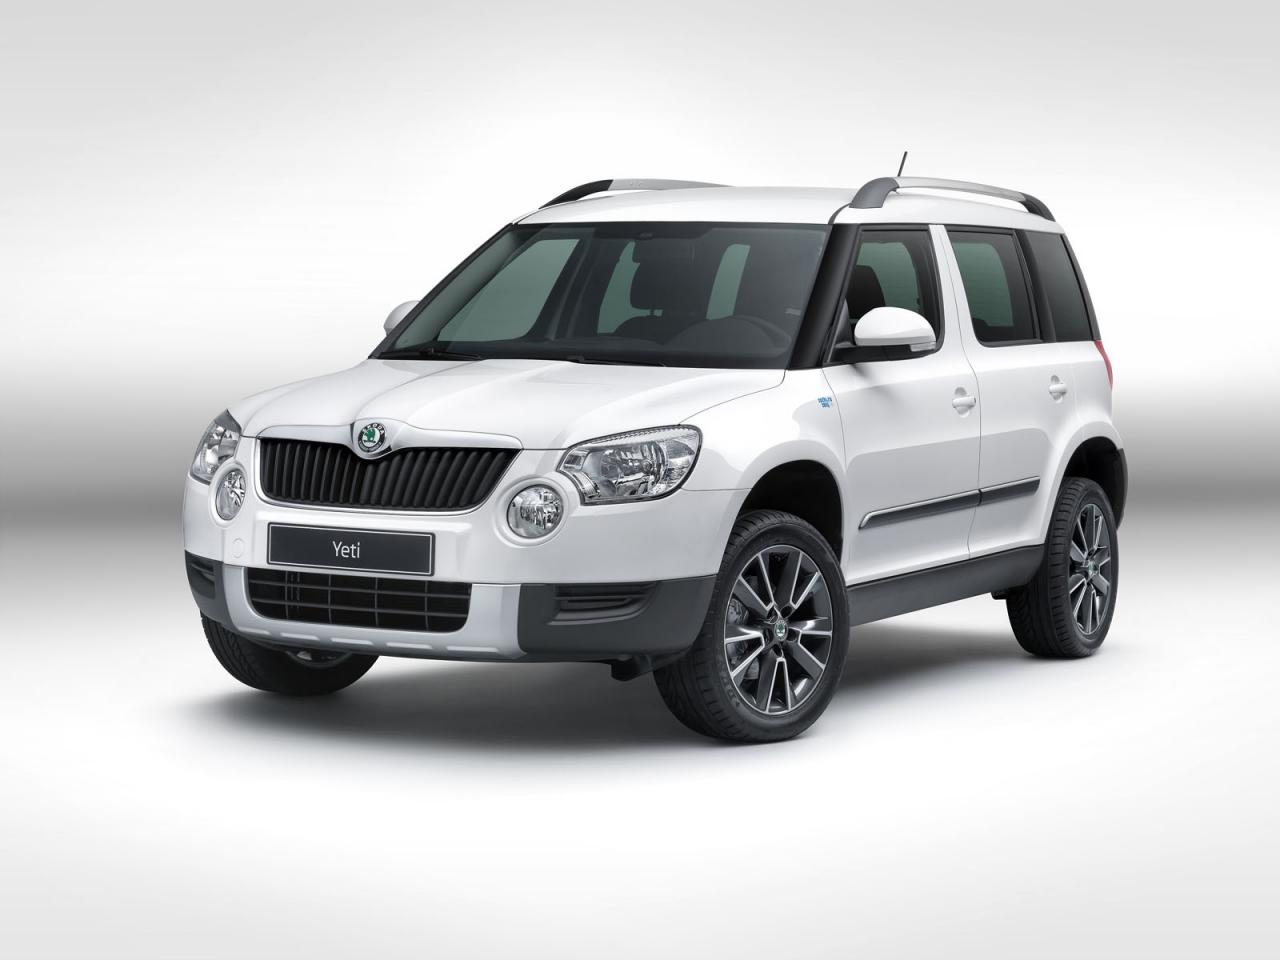 skoda yeti sochi 2014 special edition unveiled in moscow autoevolution. Black Bedroom Furniture Sets. Home Design Ideas